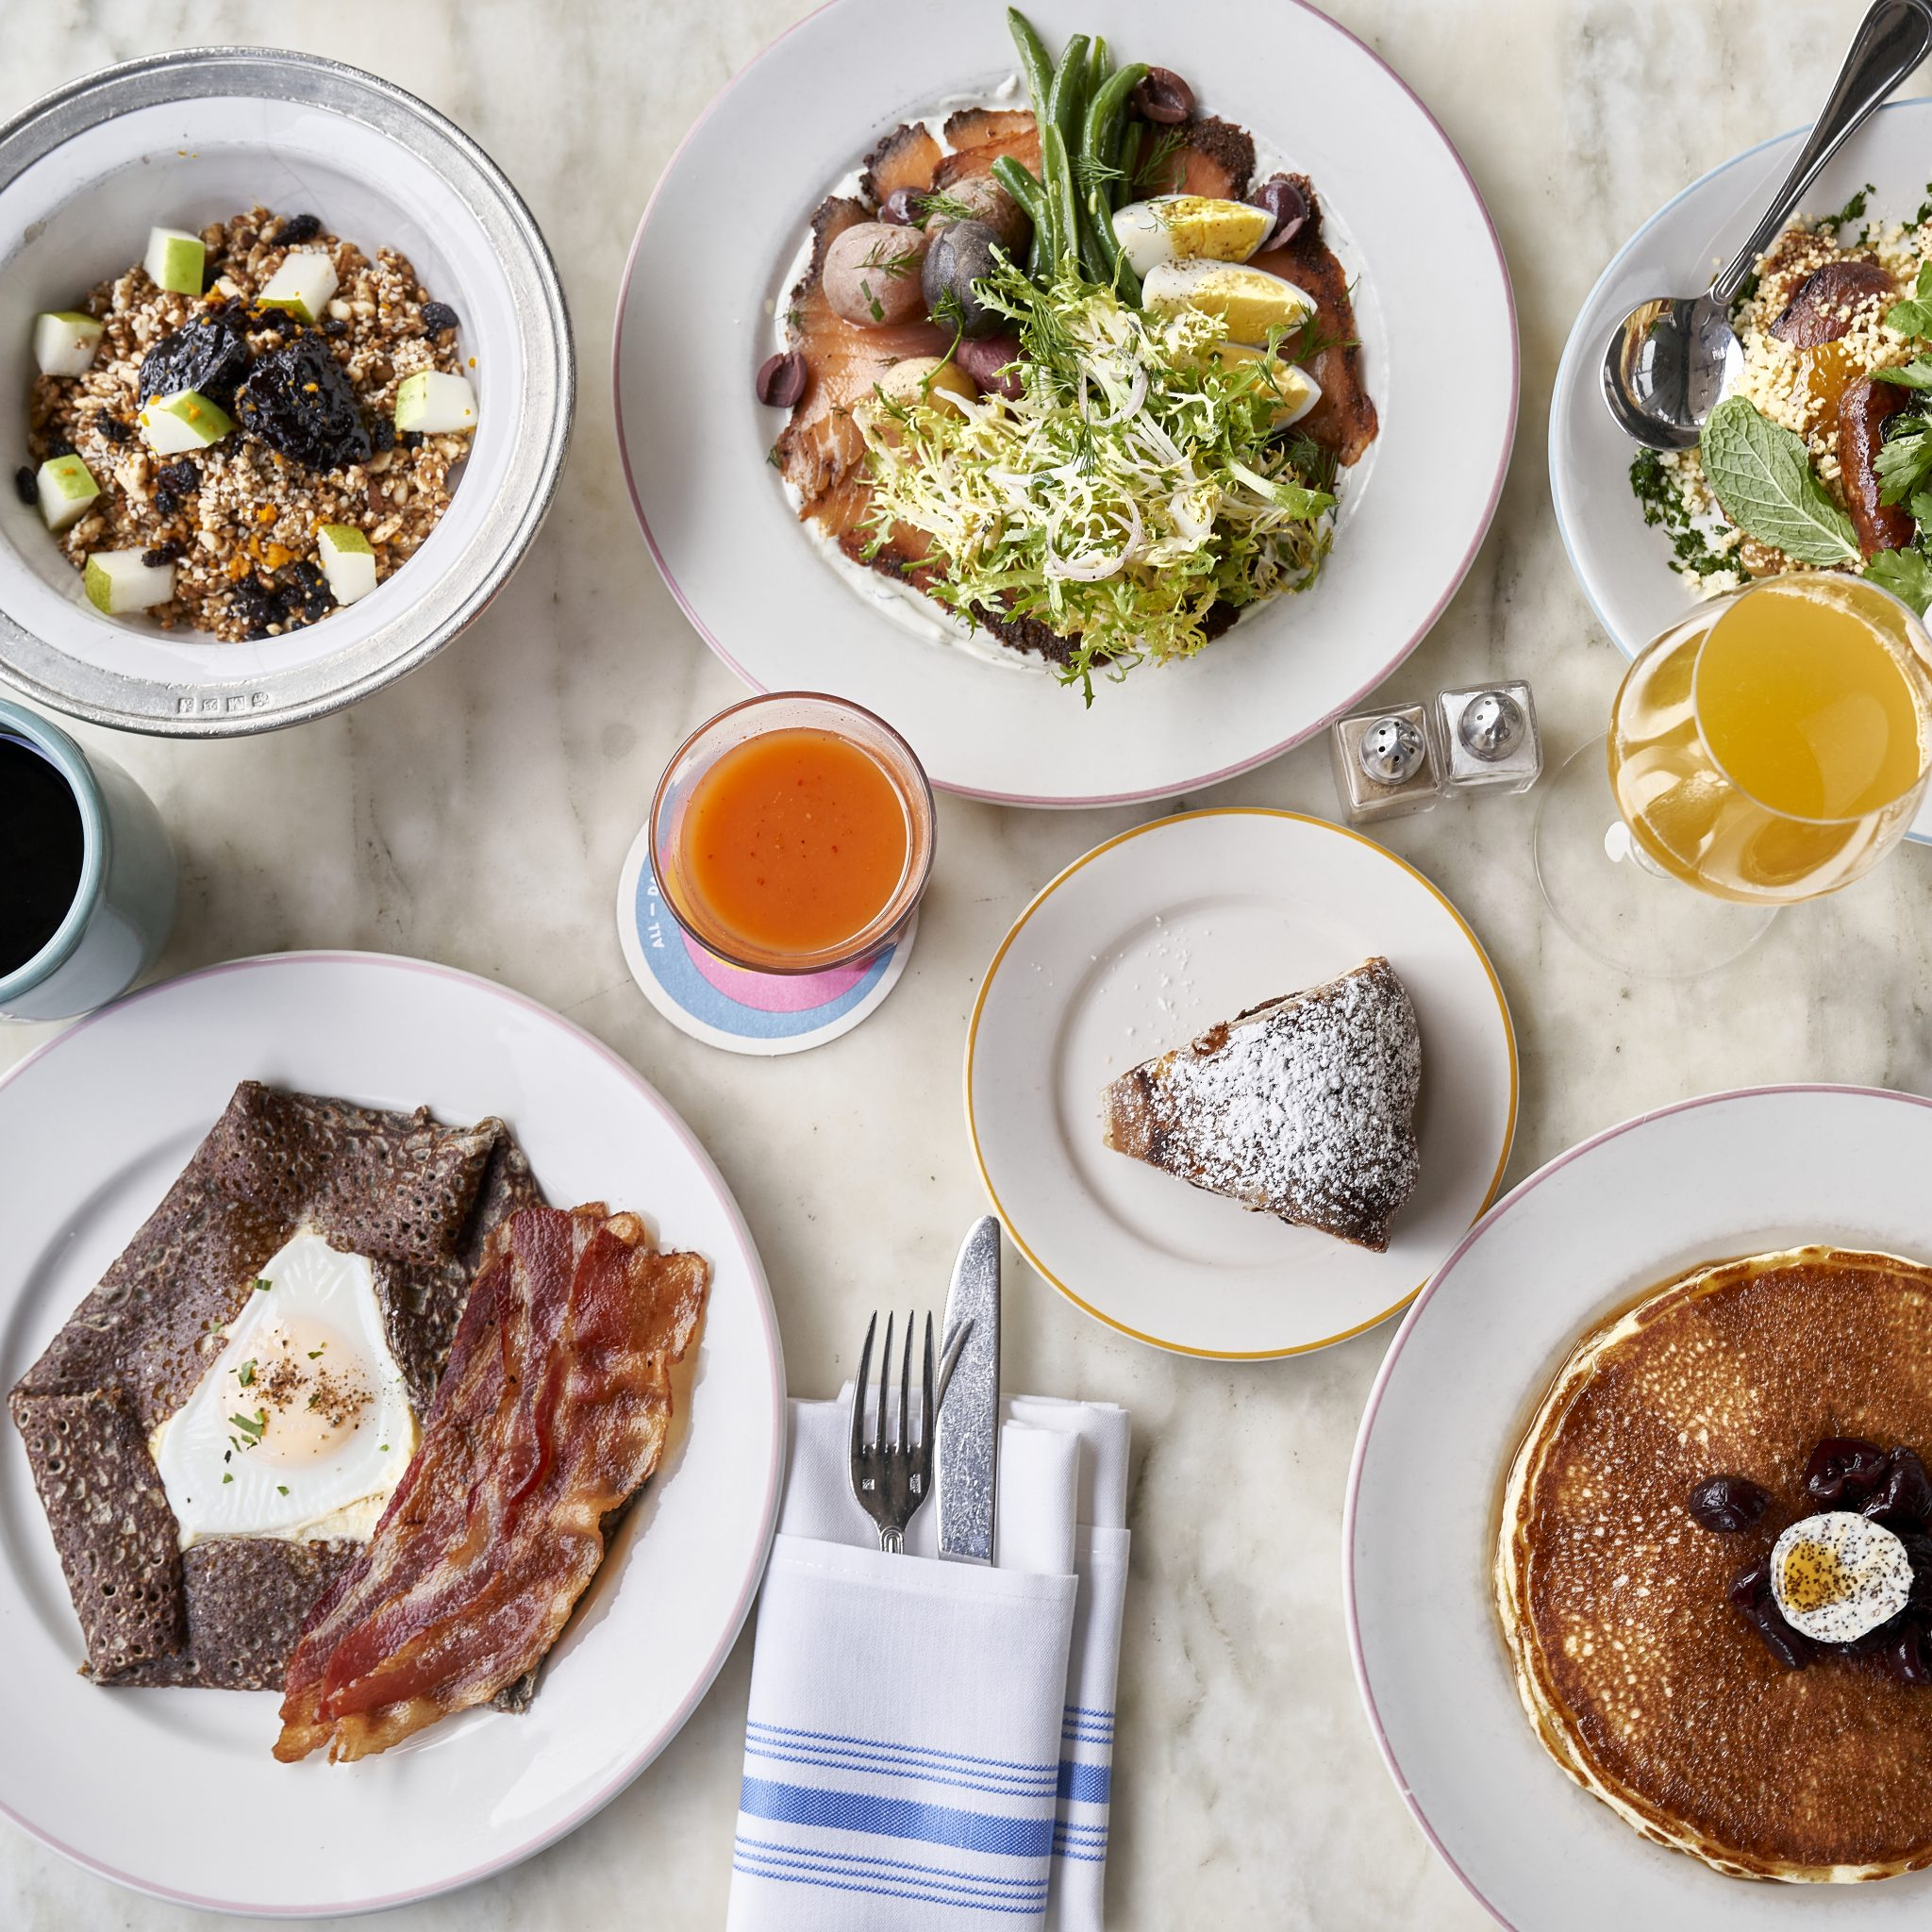 Austin's Favorite All-Day Cafe Cooks Up Brunch Like No Other